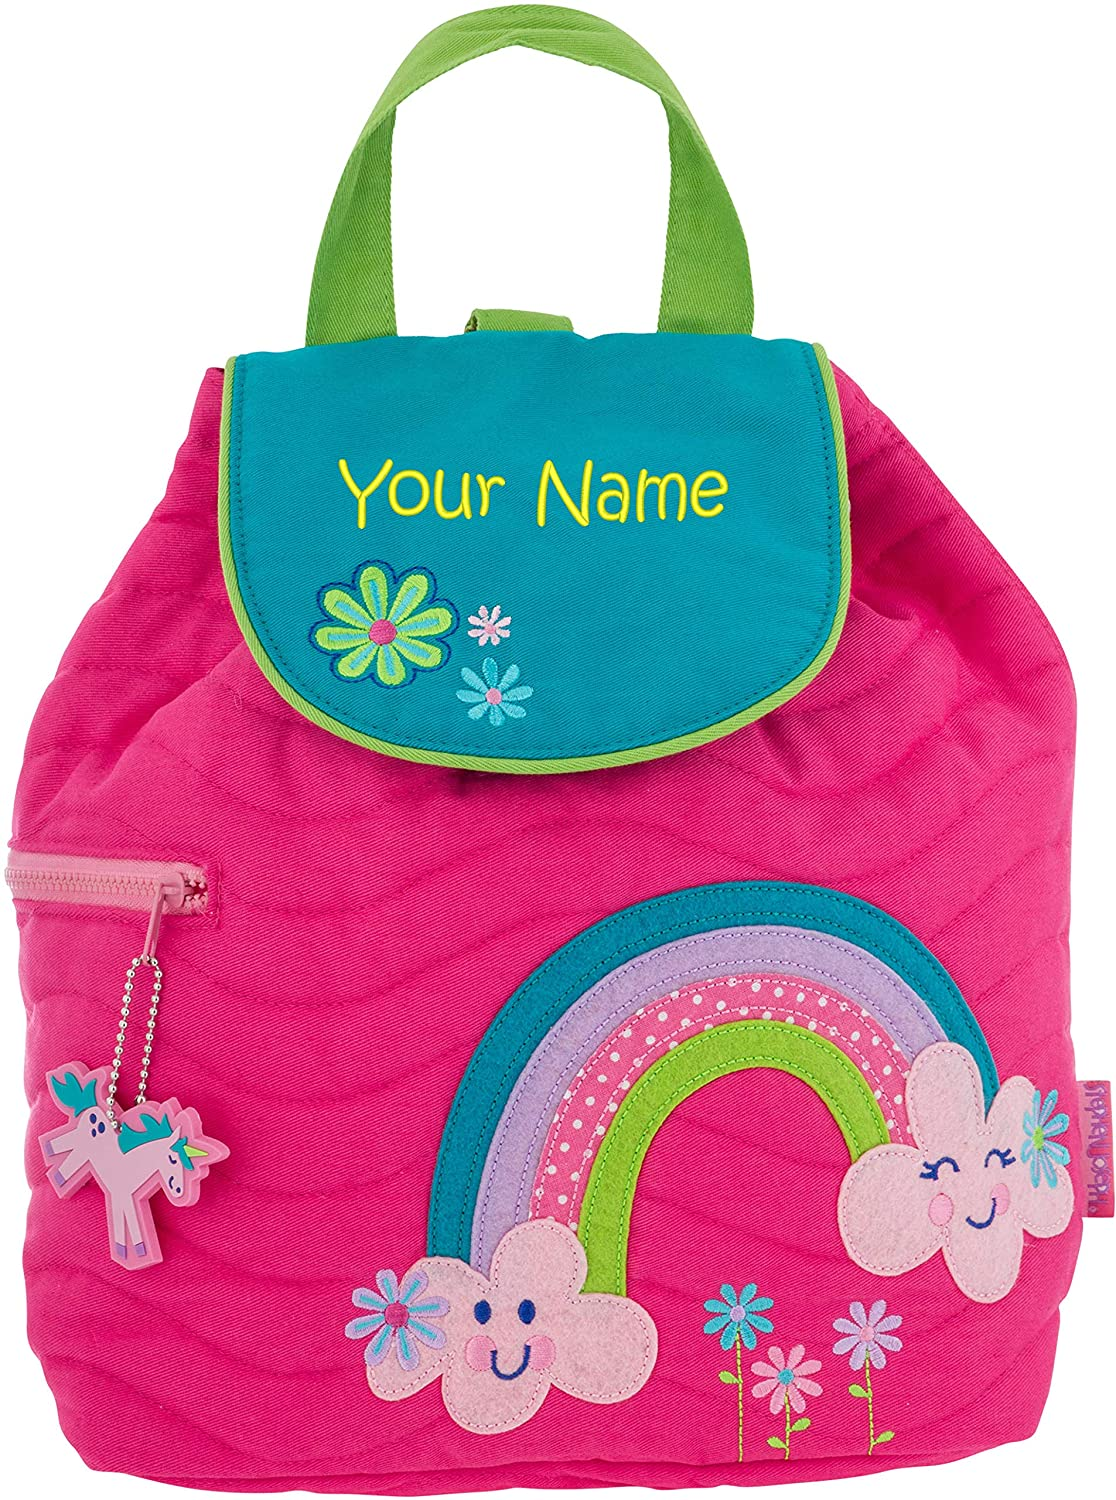 00a231c65d08 Personalized Stephen Joseph Rainbow Quilted Backpack with Embroidered Name